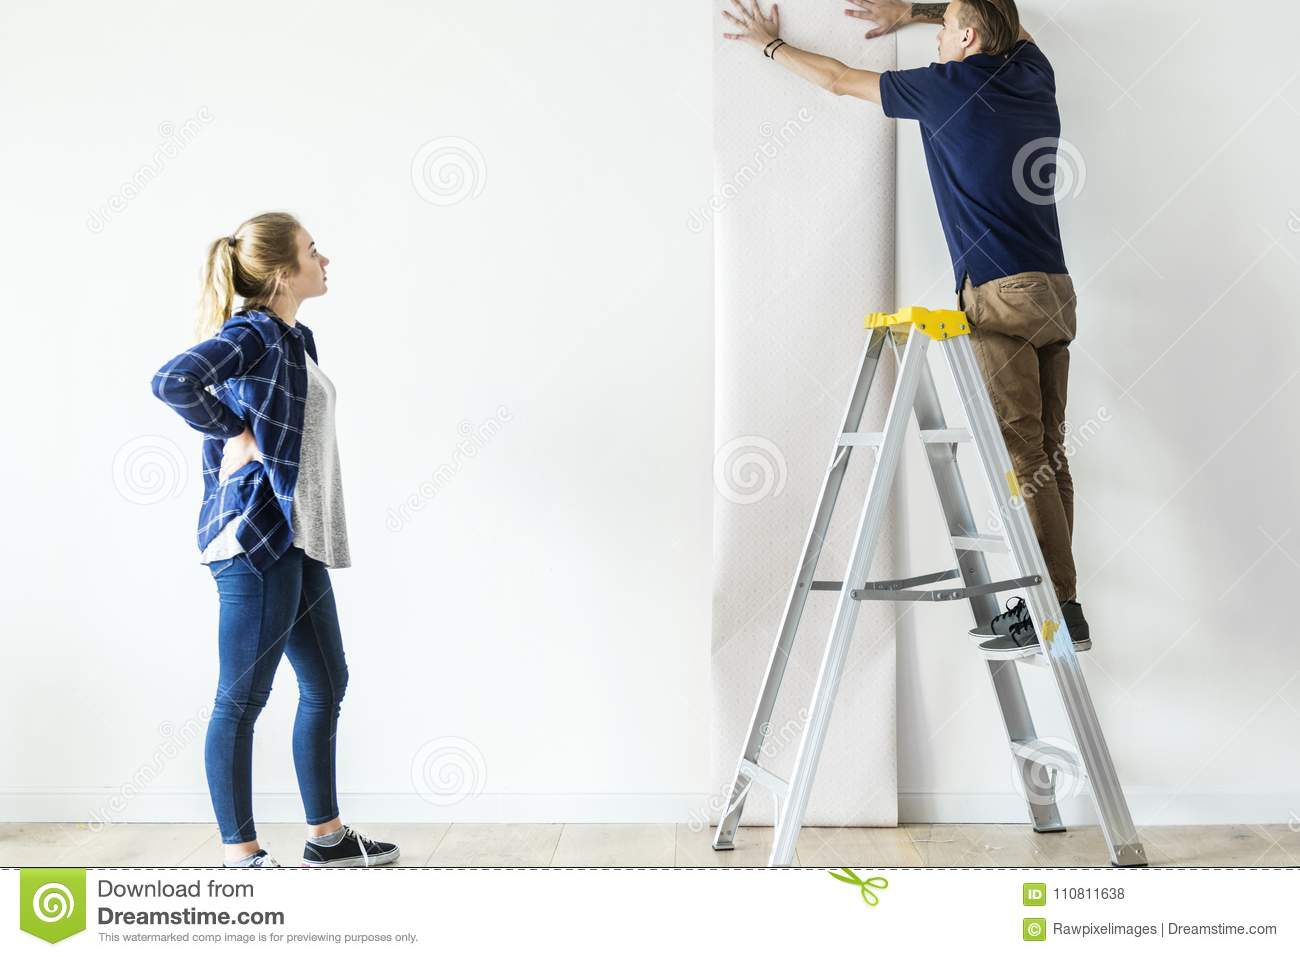 Couple choosing house wallpaper together